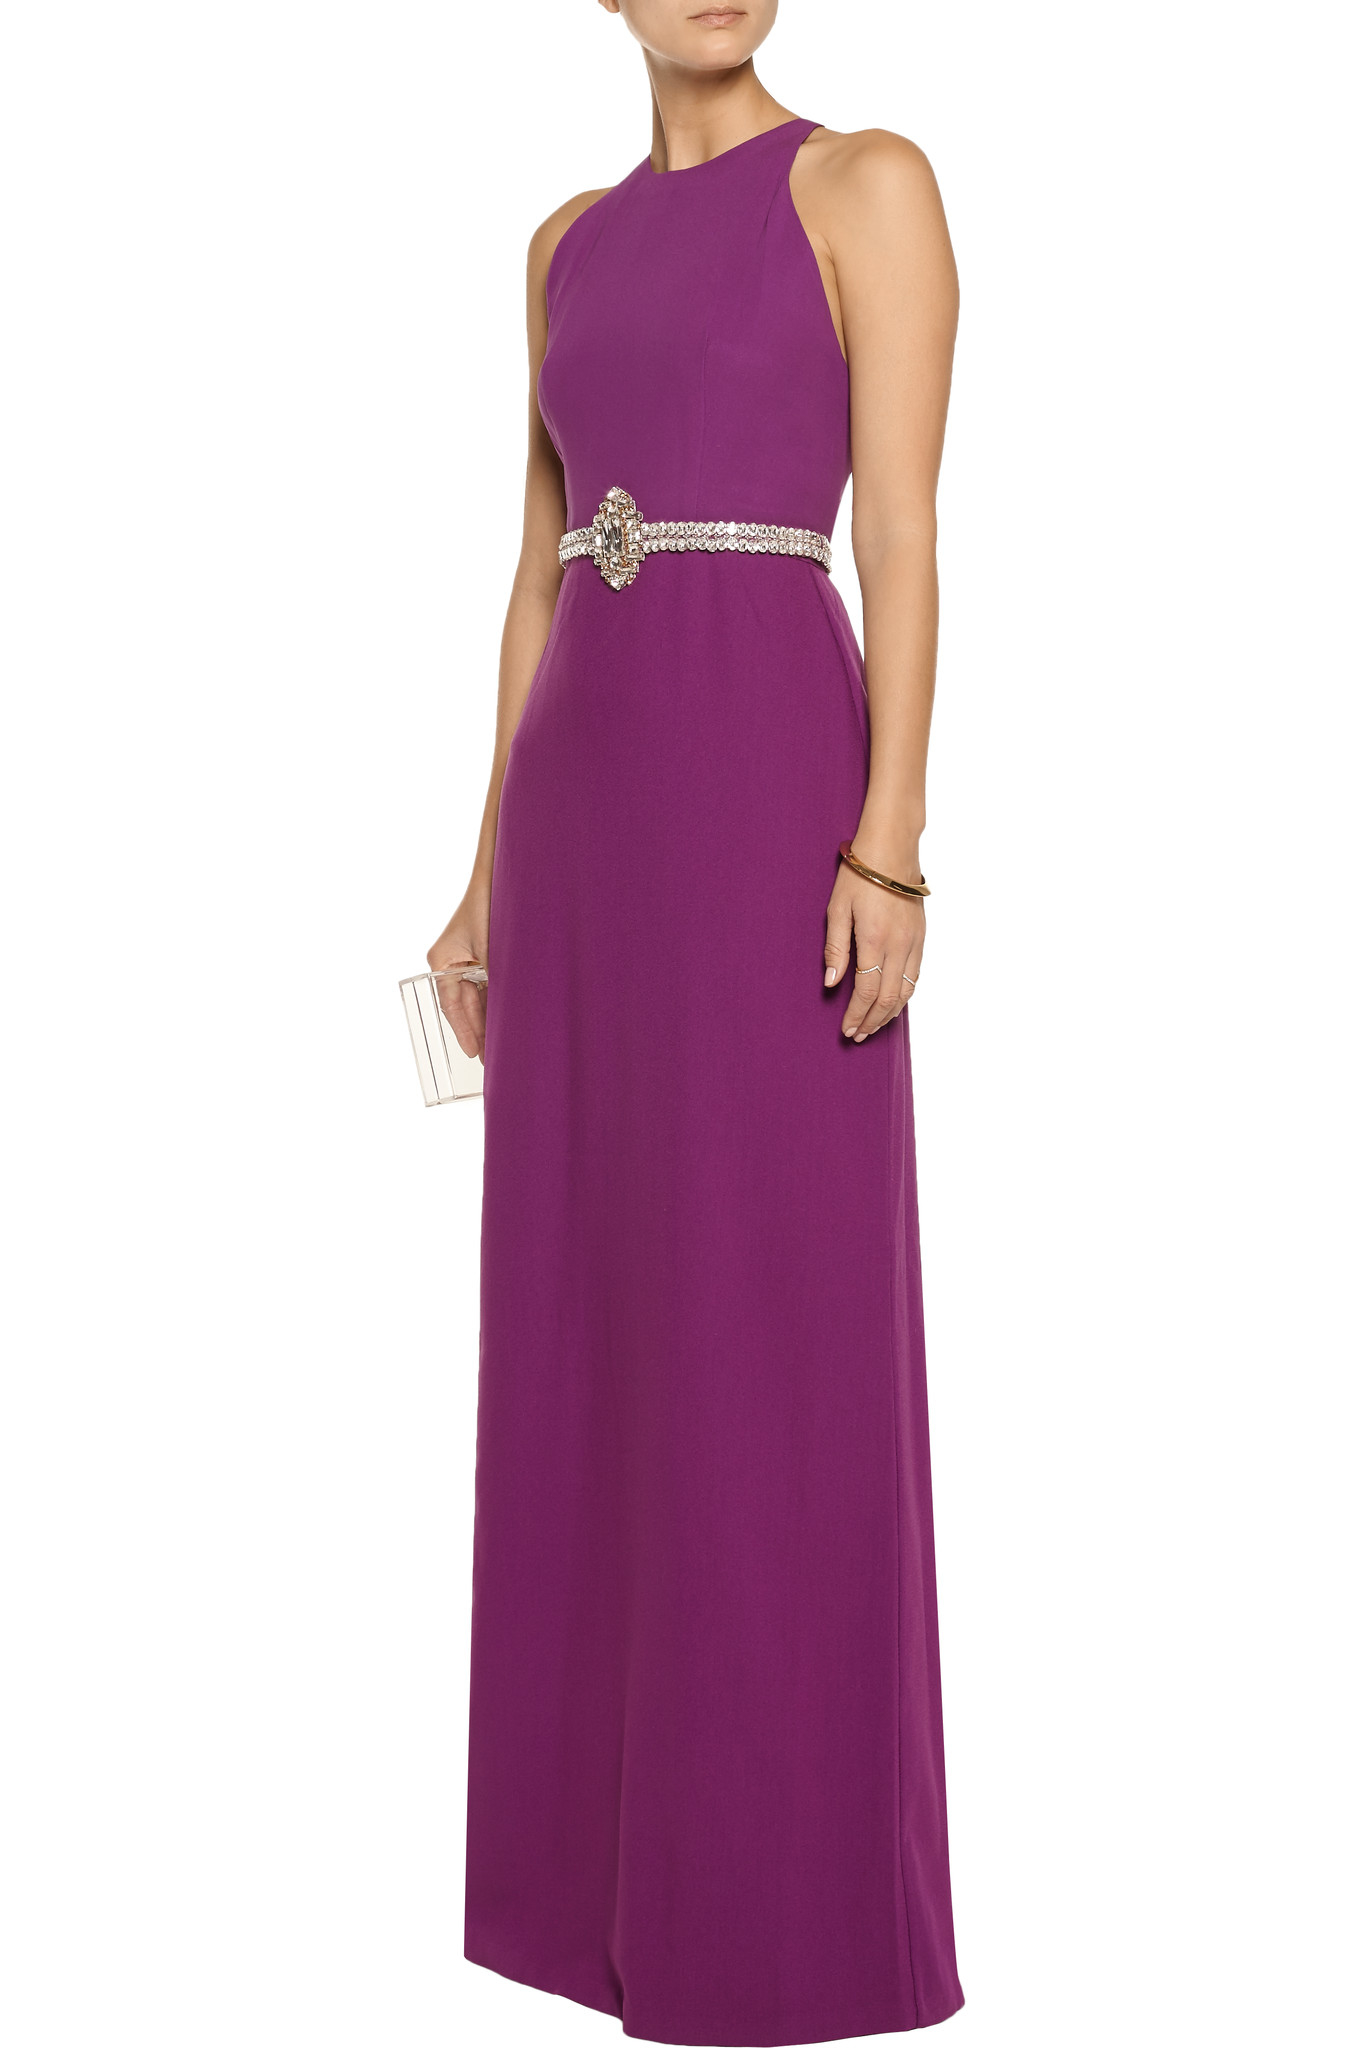 Raoul Synthetic Embellished Crepe Gown in Violet (Purple)